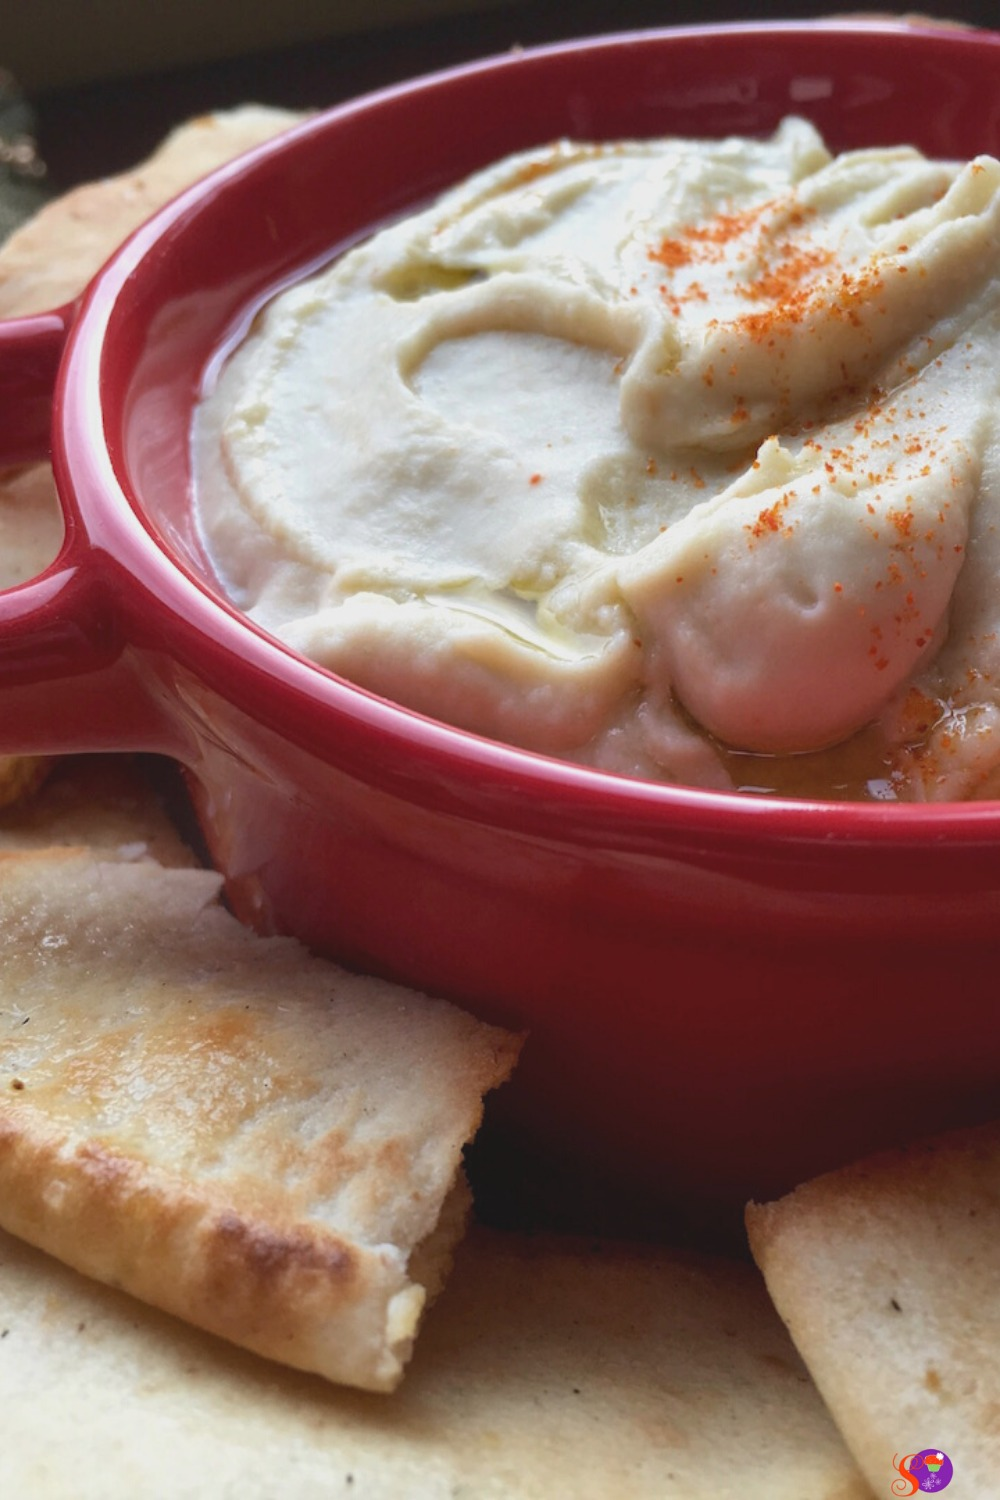 This smooth and creamy white bean dip works great as a snack or appetizer!